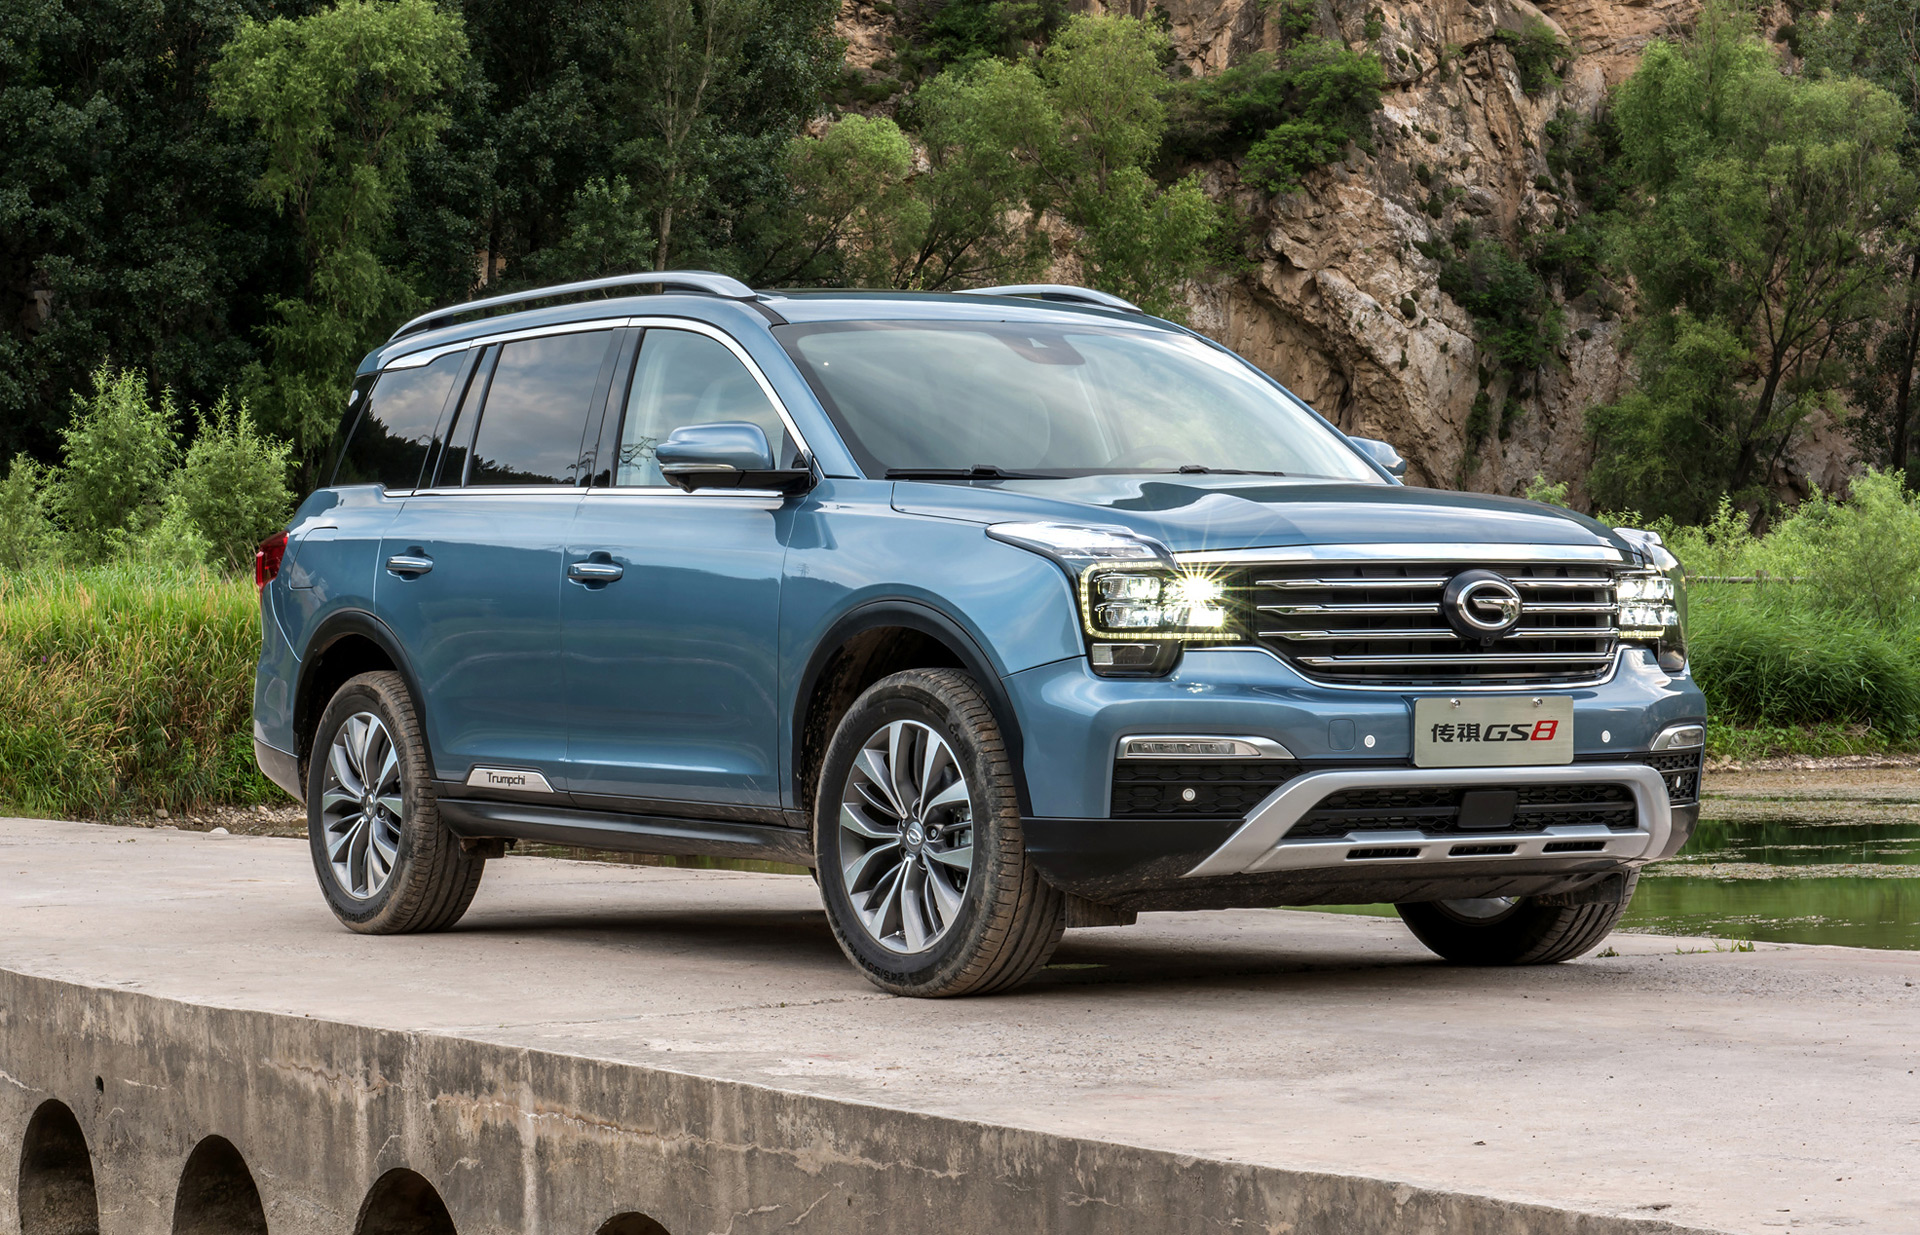 GAC Motor to enter US market in 2019 with Trumpchi GS8 SUV